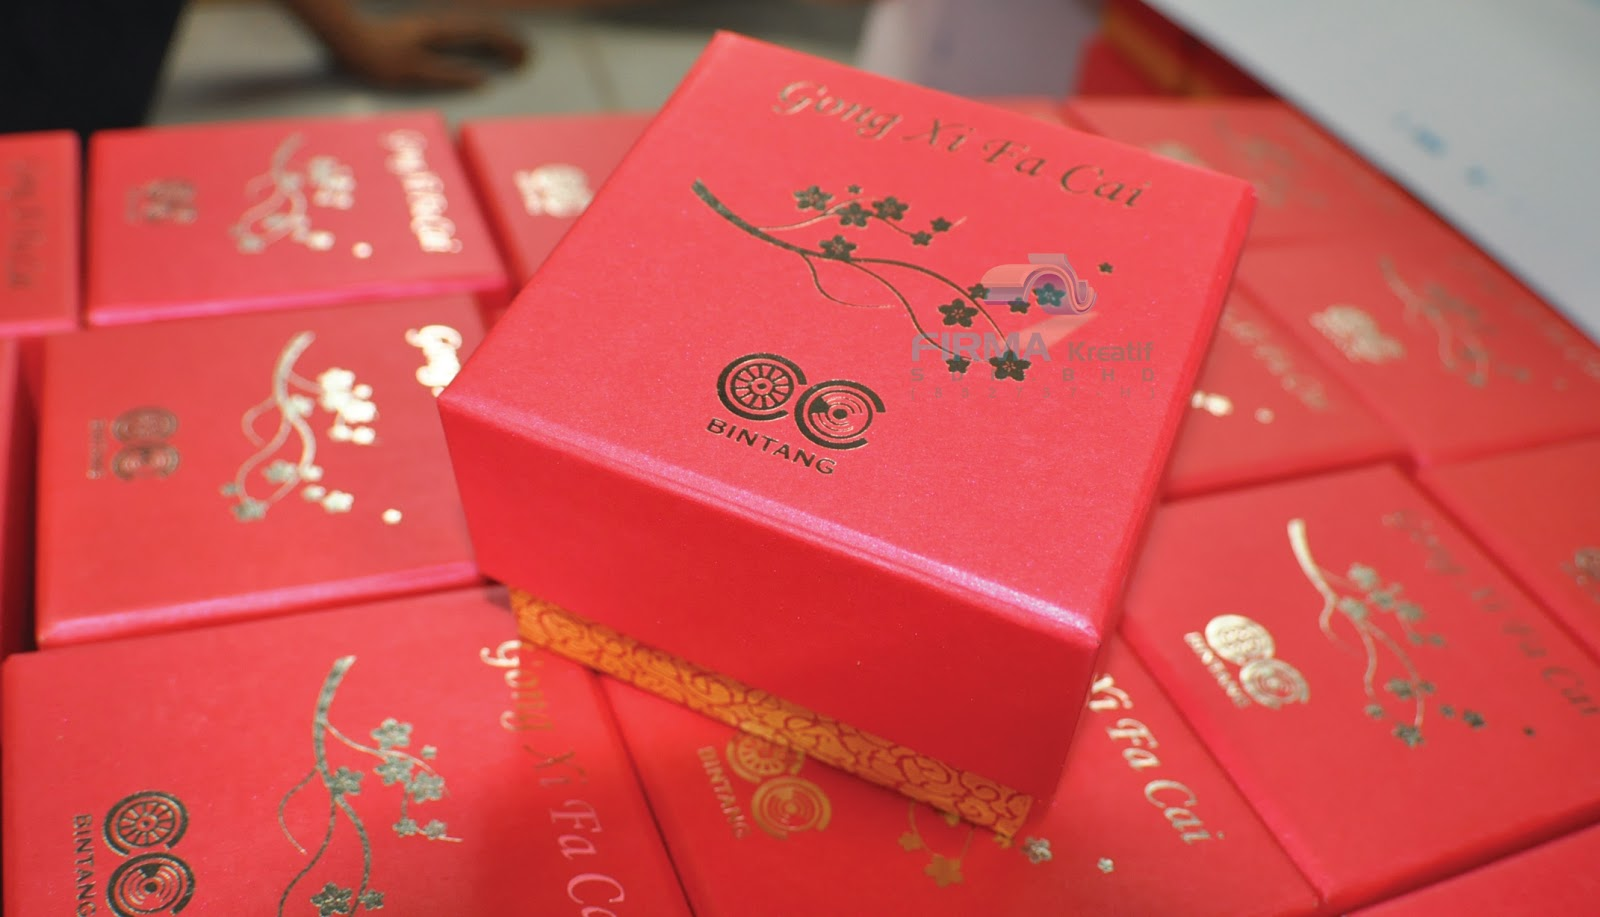 chinese new year gift box cycle carriage bintang description chinese new year gift - Gifts For Chinese New Year